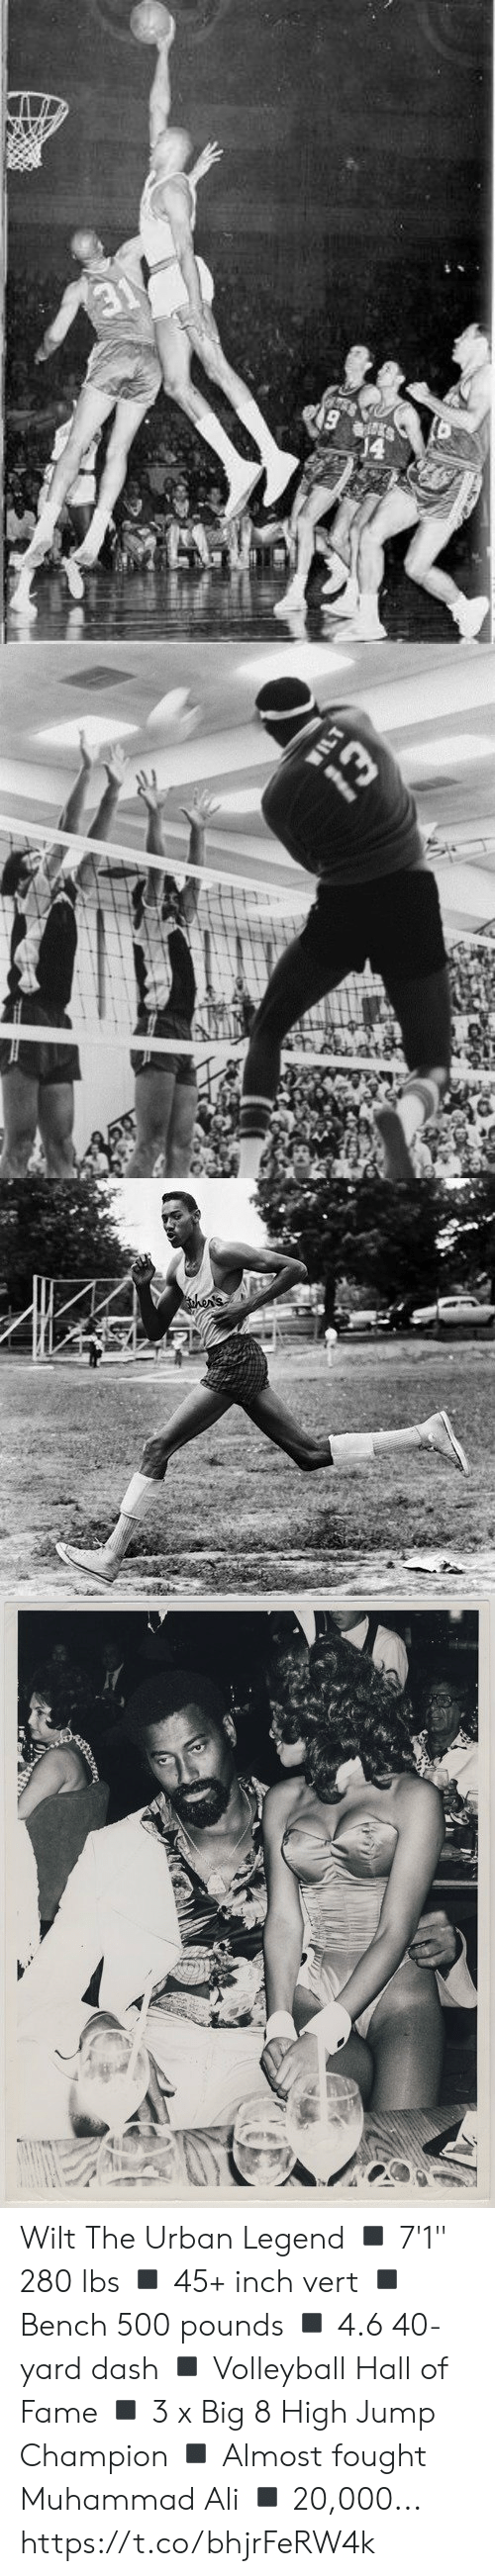 """Volleyball: 19   WILT  Whe   then's Wilt The Urban Legend  ◾️ 7'1"""" 280 lbs ◾️ 45+ inch vert ◾️ Bench 500 pounds ◾️ 4.6 40-yard dash ◾️ Volleyball Hall of Fame ◾️ 3 x Big 8 High Jump Champion ◾️ Almost fought Muhammad Ali ◾️ 20,000... https://t.co/bhjrFeRW4k"""